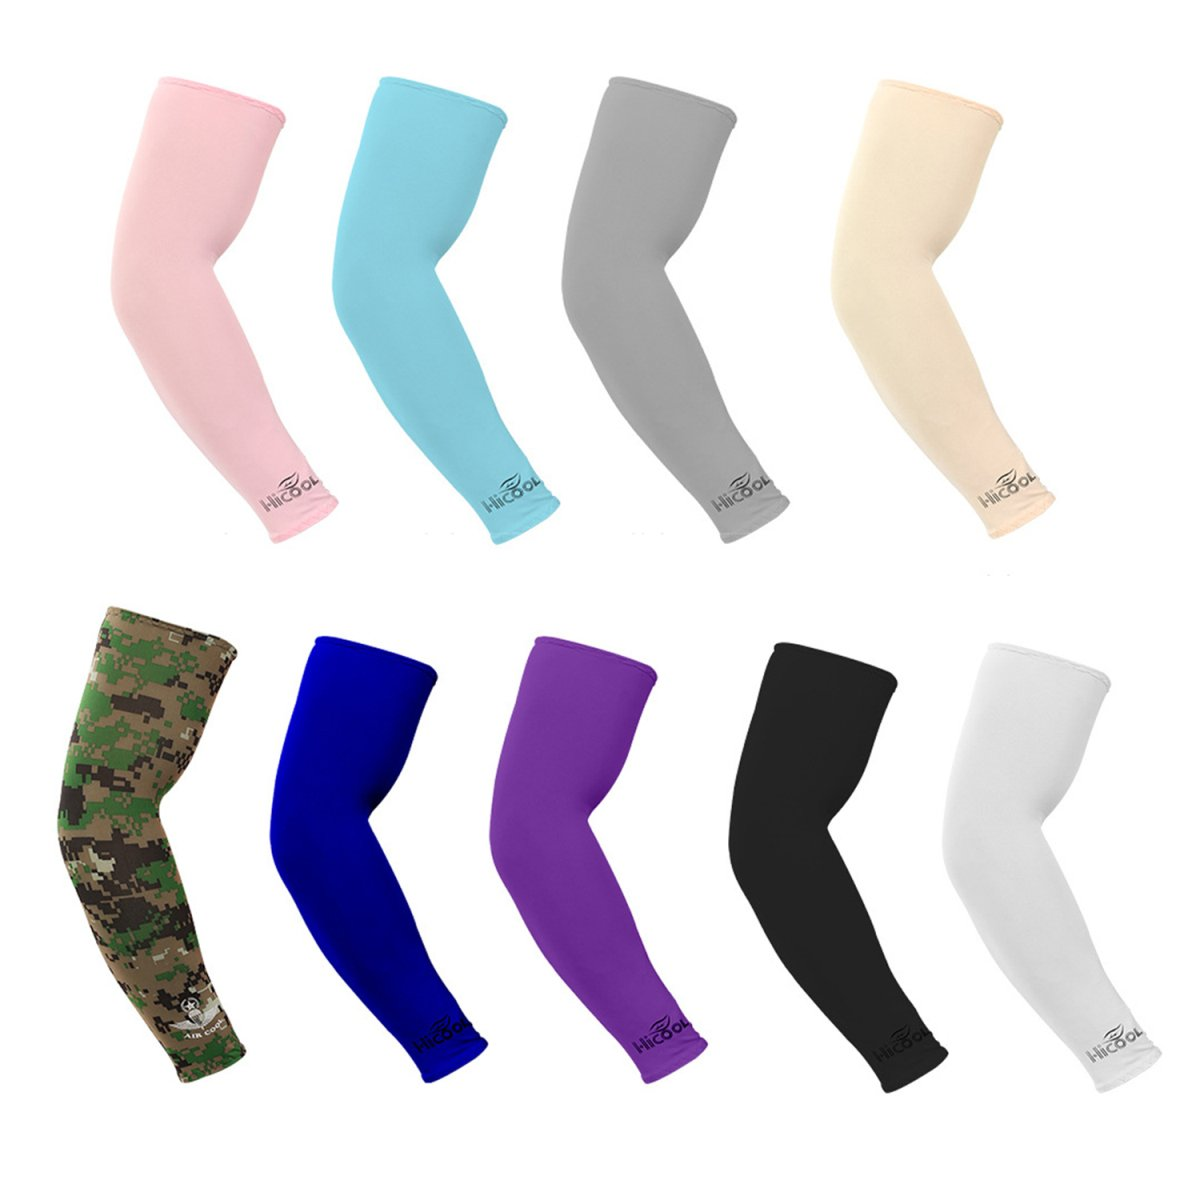 HONGTENG 9 pair Unisex UV Protection arm sleeves compression &cooling cover sleeves for Cycling/Golf/Basketball/ other sports